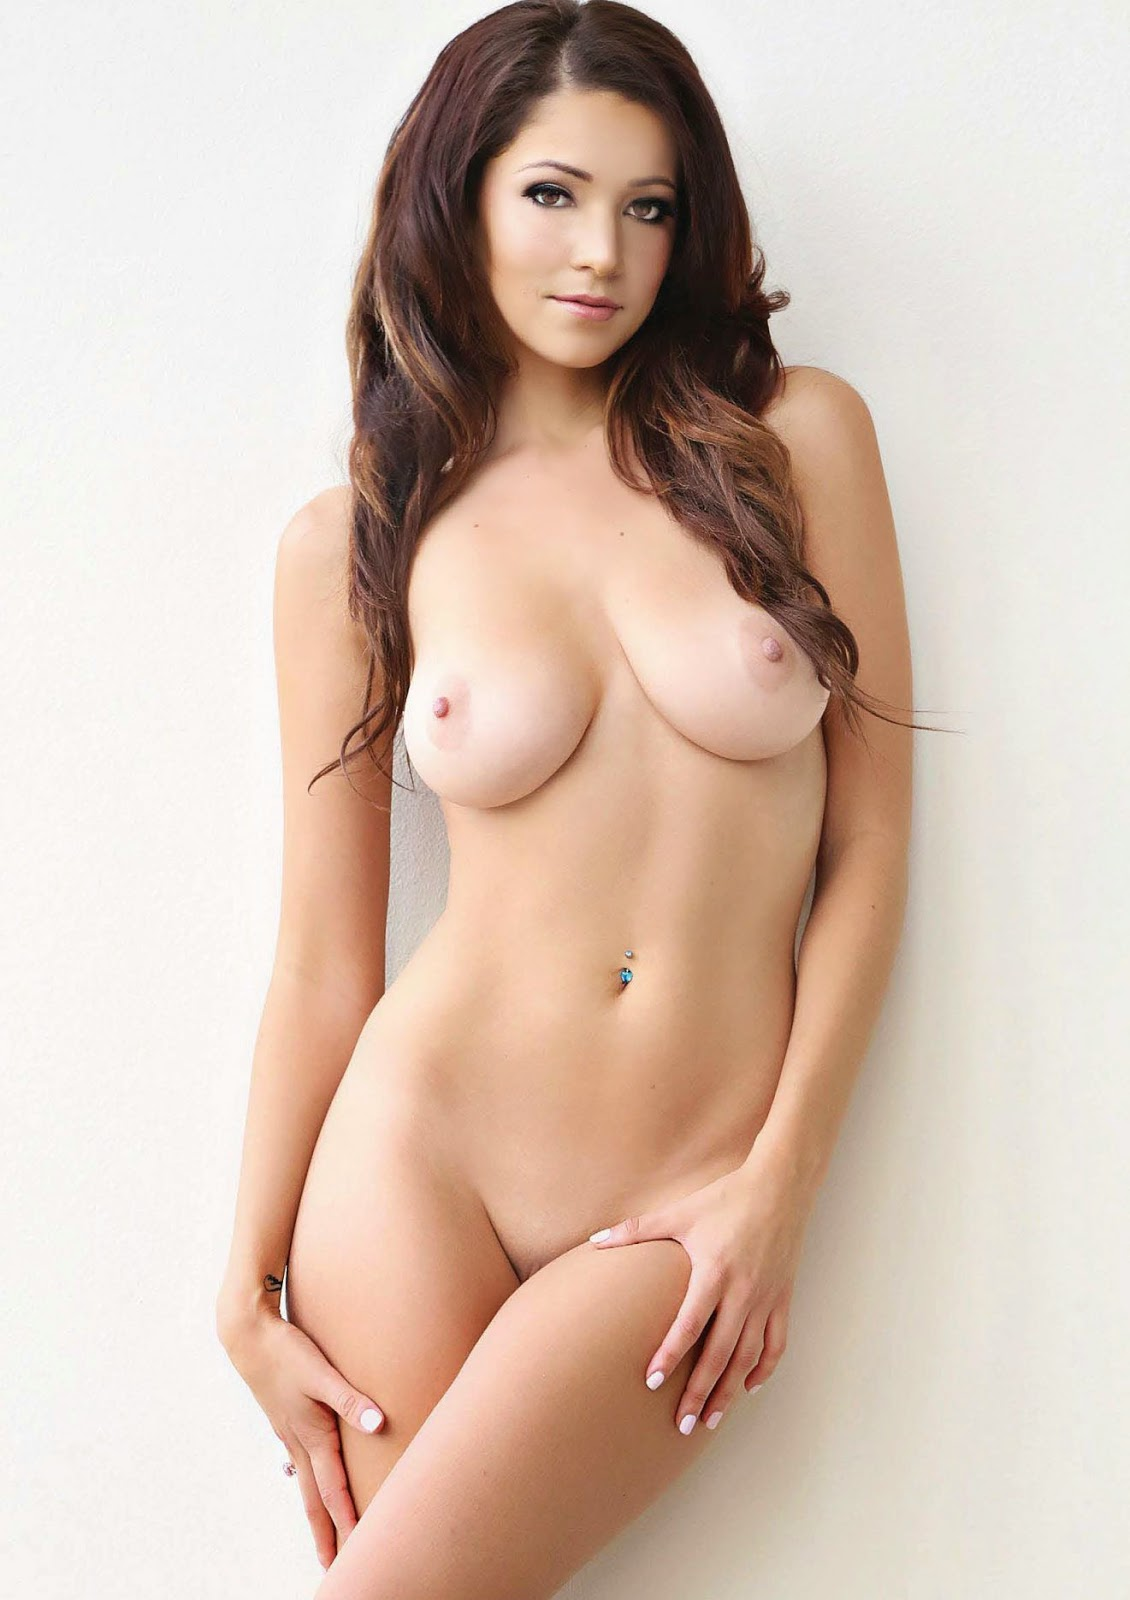 Perfect Female Naked Body